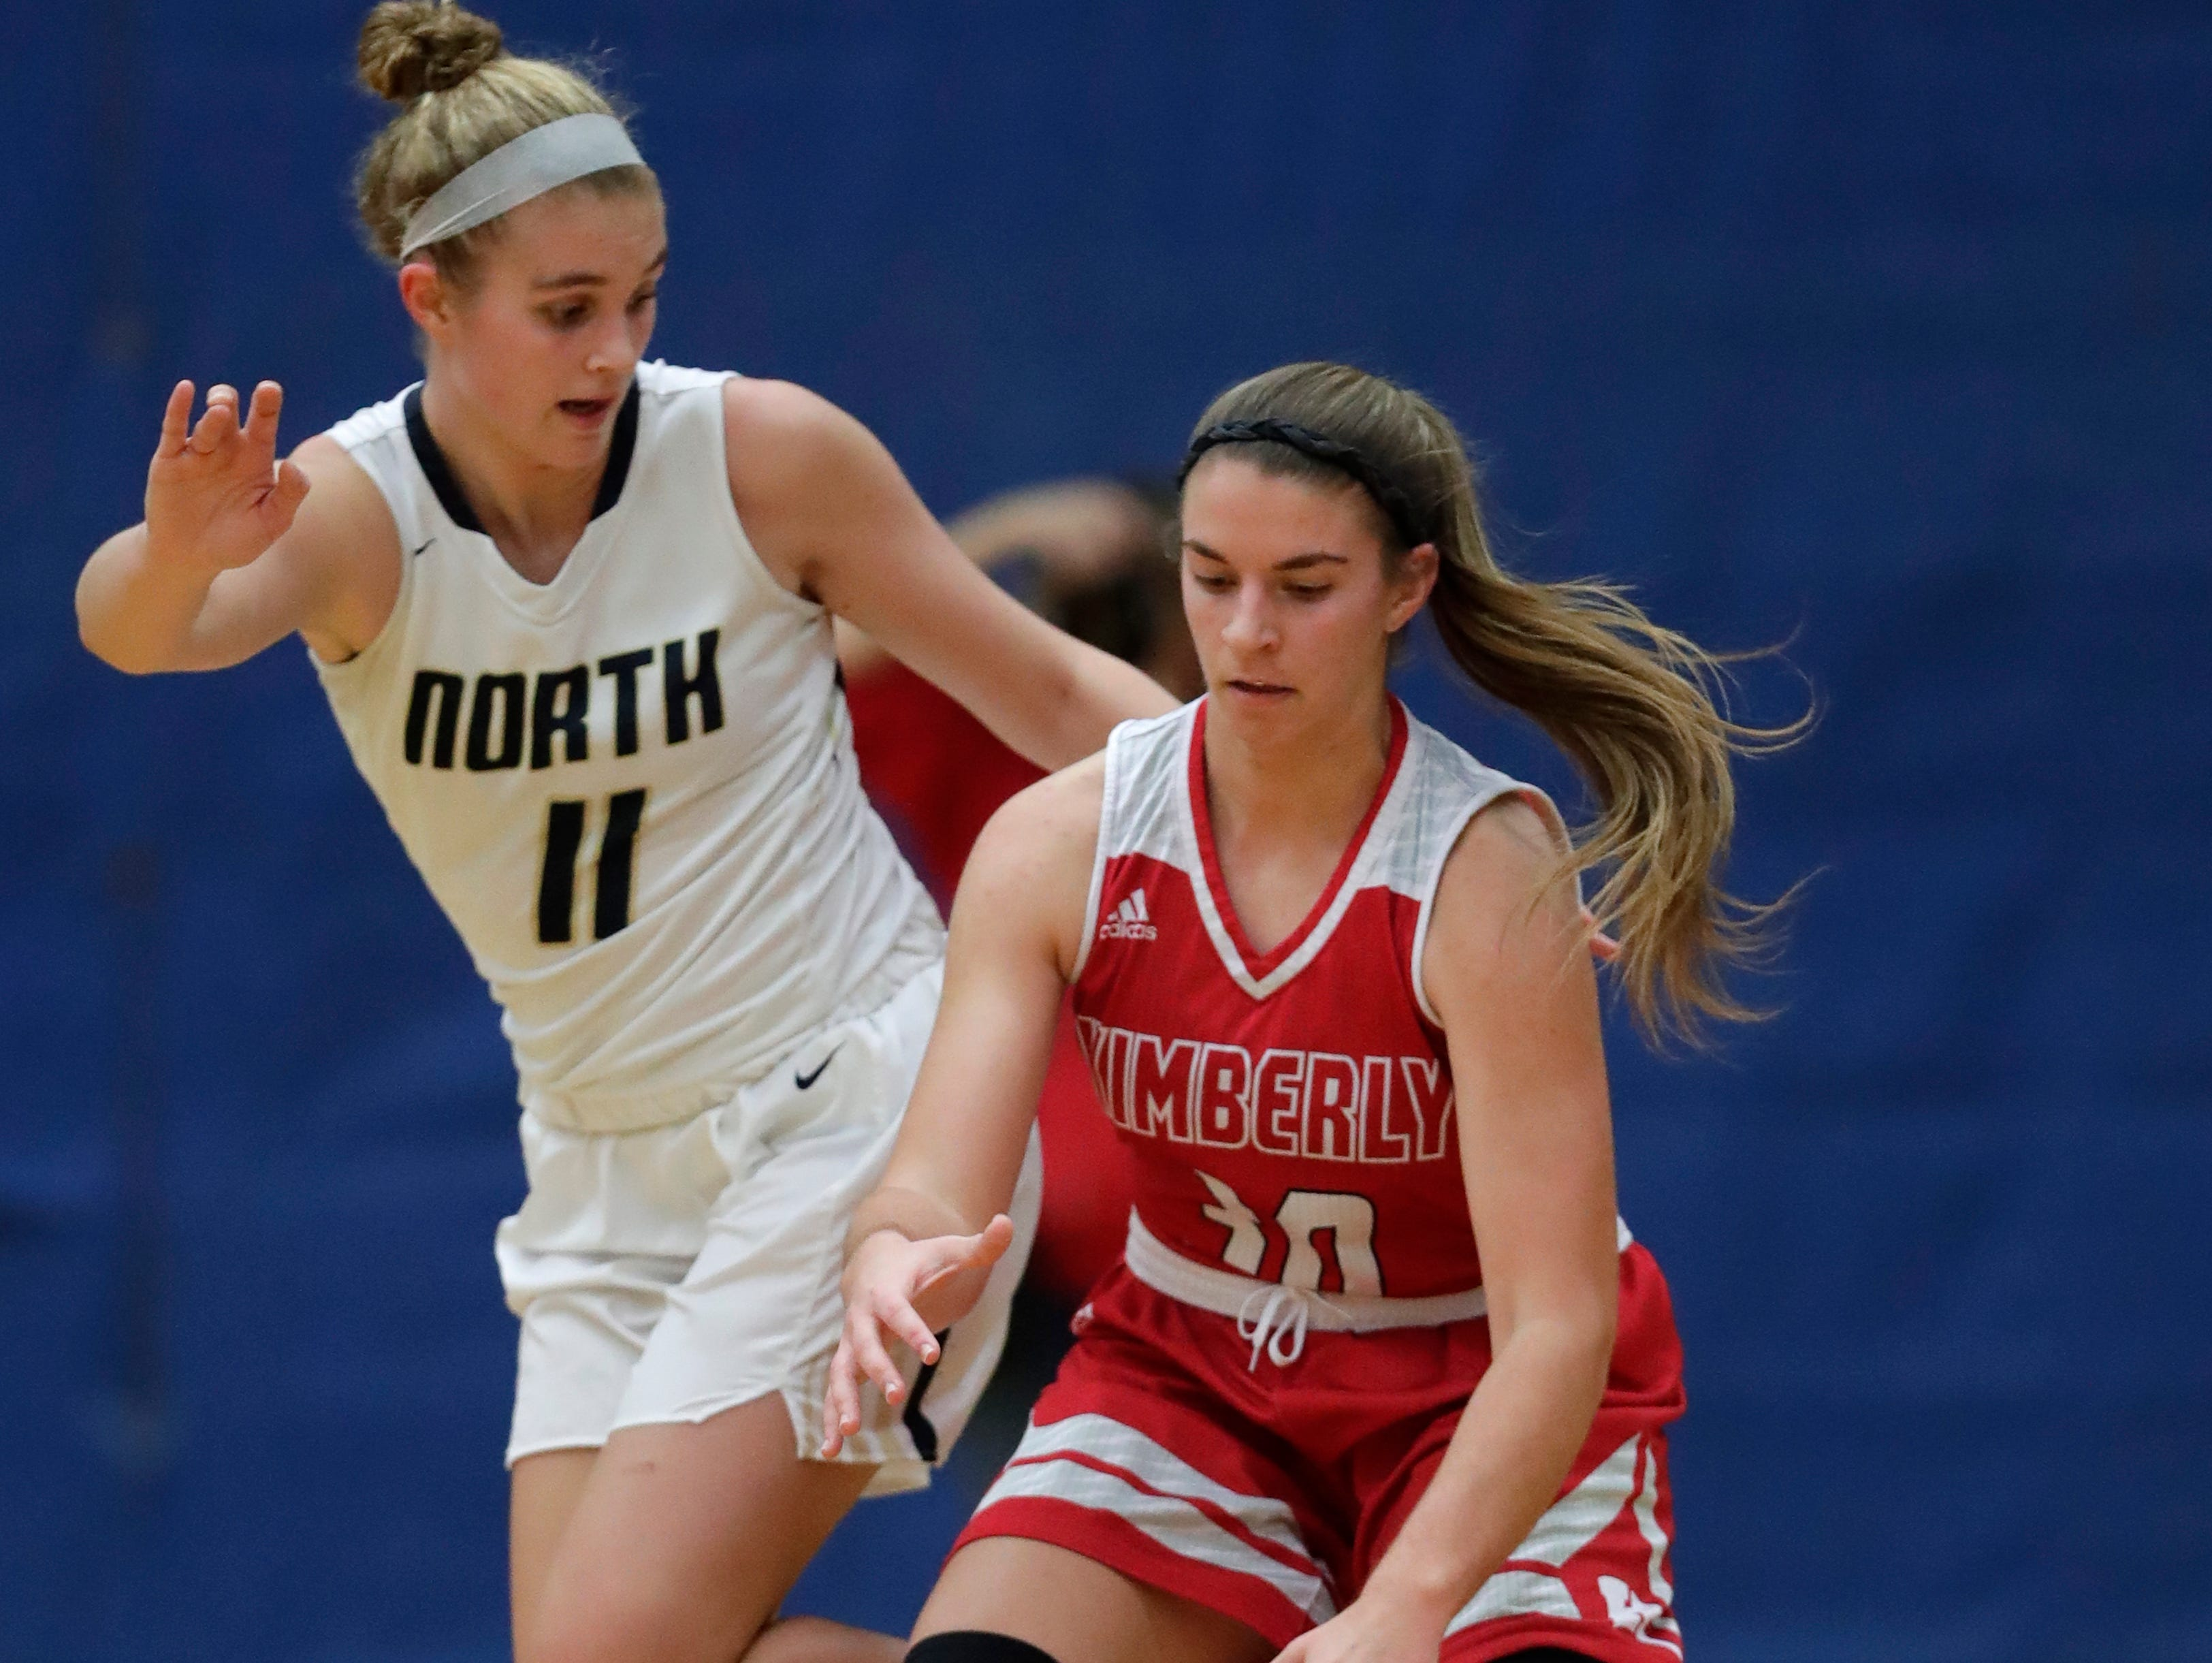 Appleton North High School's Emma Erickson (11) defends against Kimberly High School's Marissa Murray (30) during their girls basketball game Tuesday, January 8, 2019, in Appleton, Wis. Dan Powers/USA TODAY NETWORK-Wisconsin